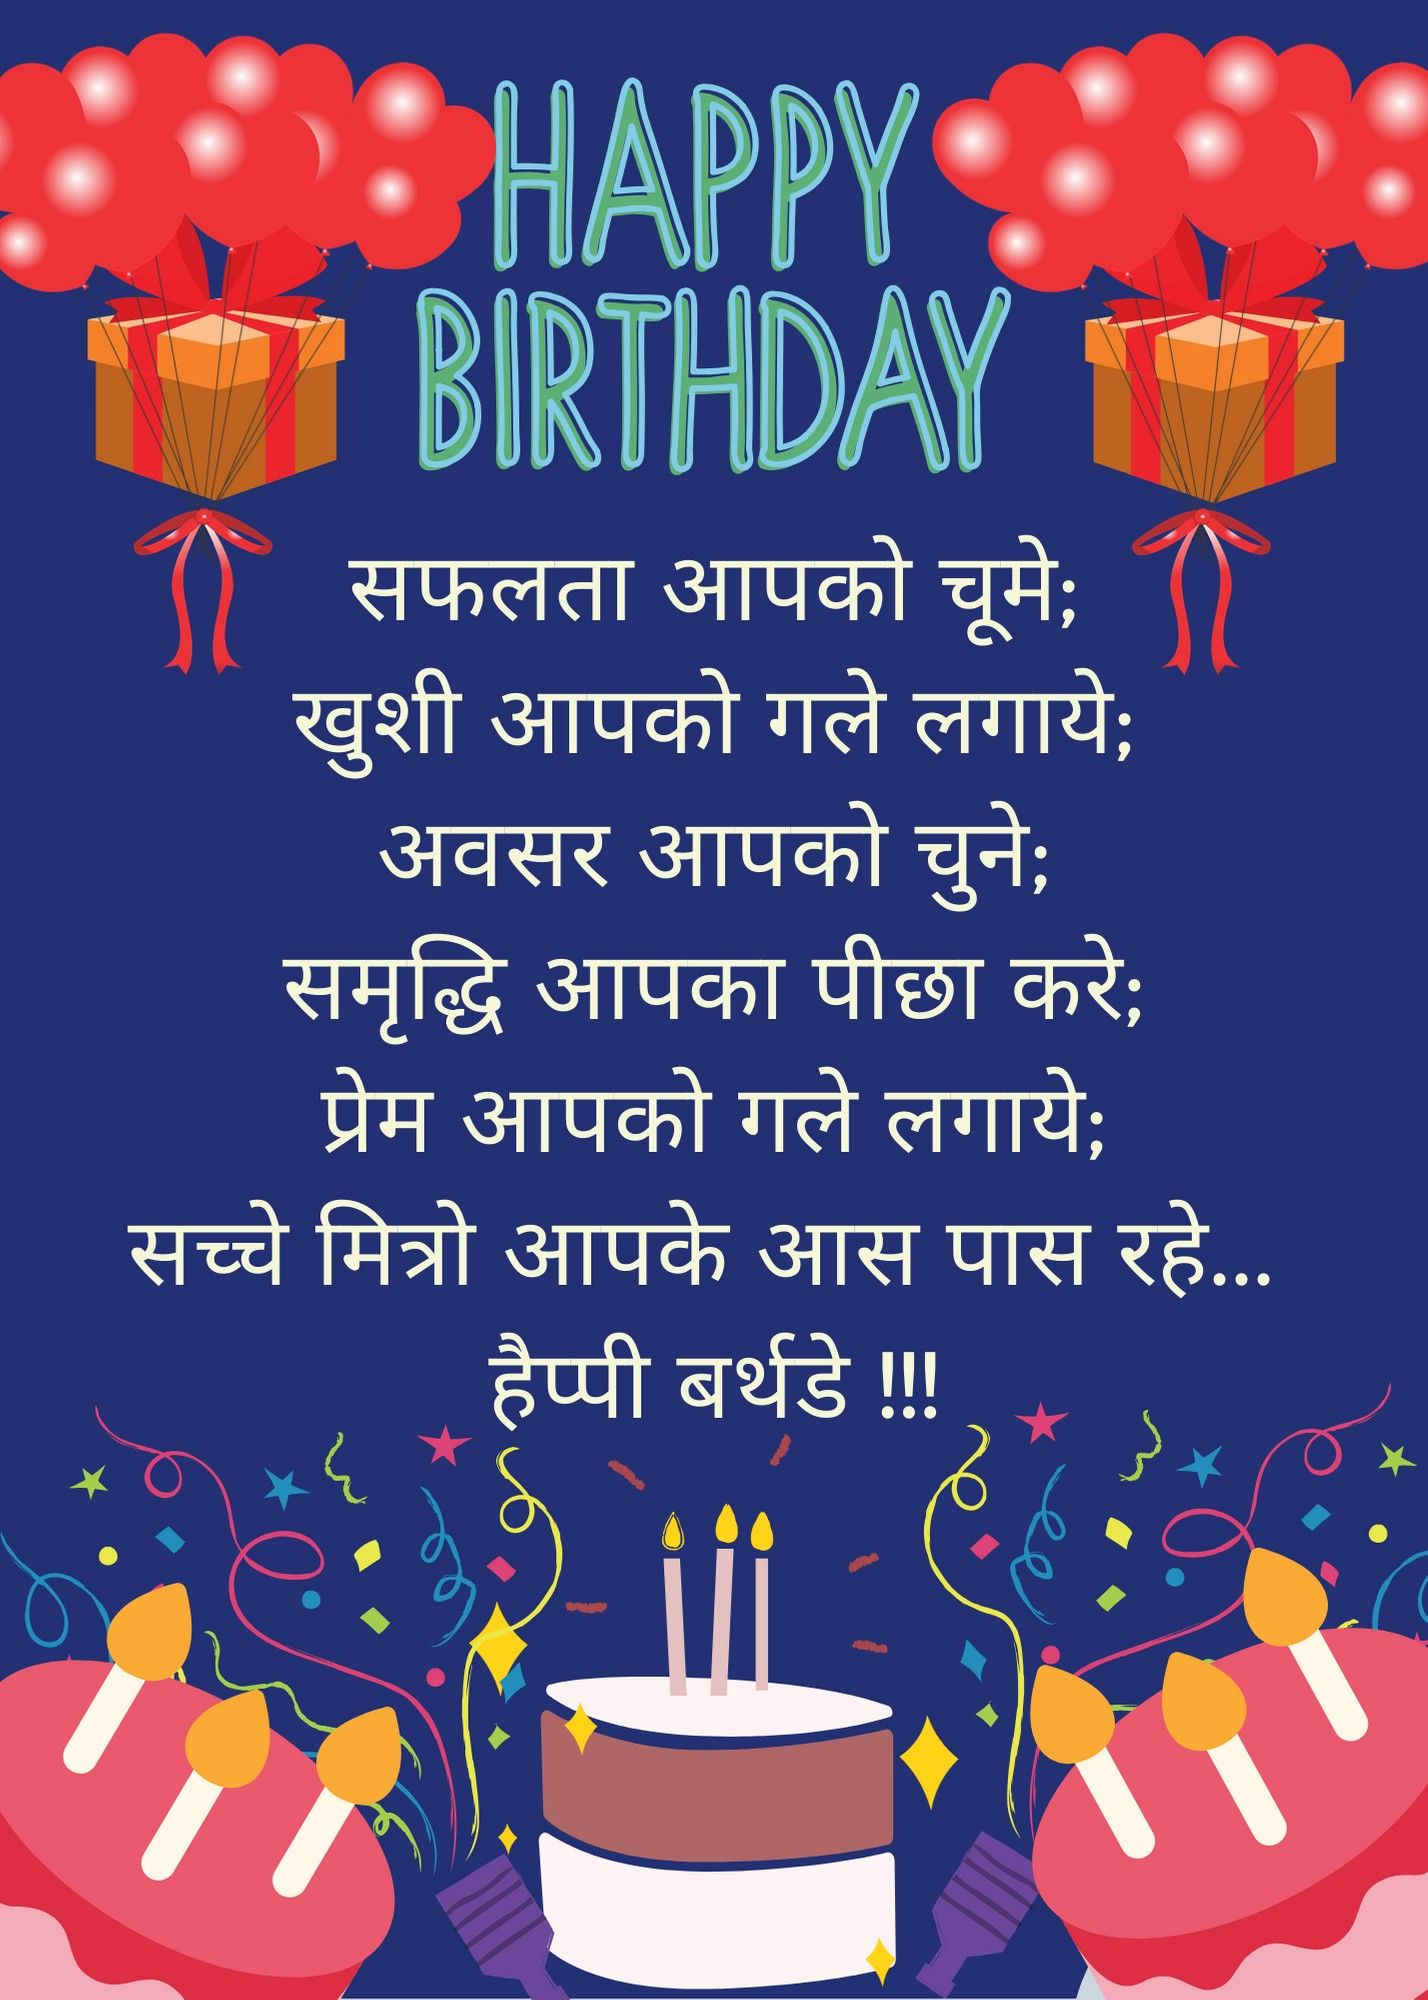 happy birthday wishes in hindi text in 2020 Happy